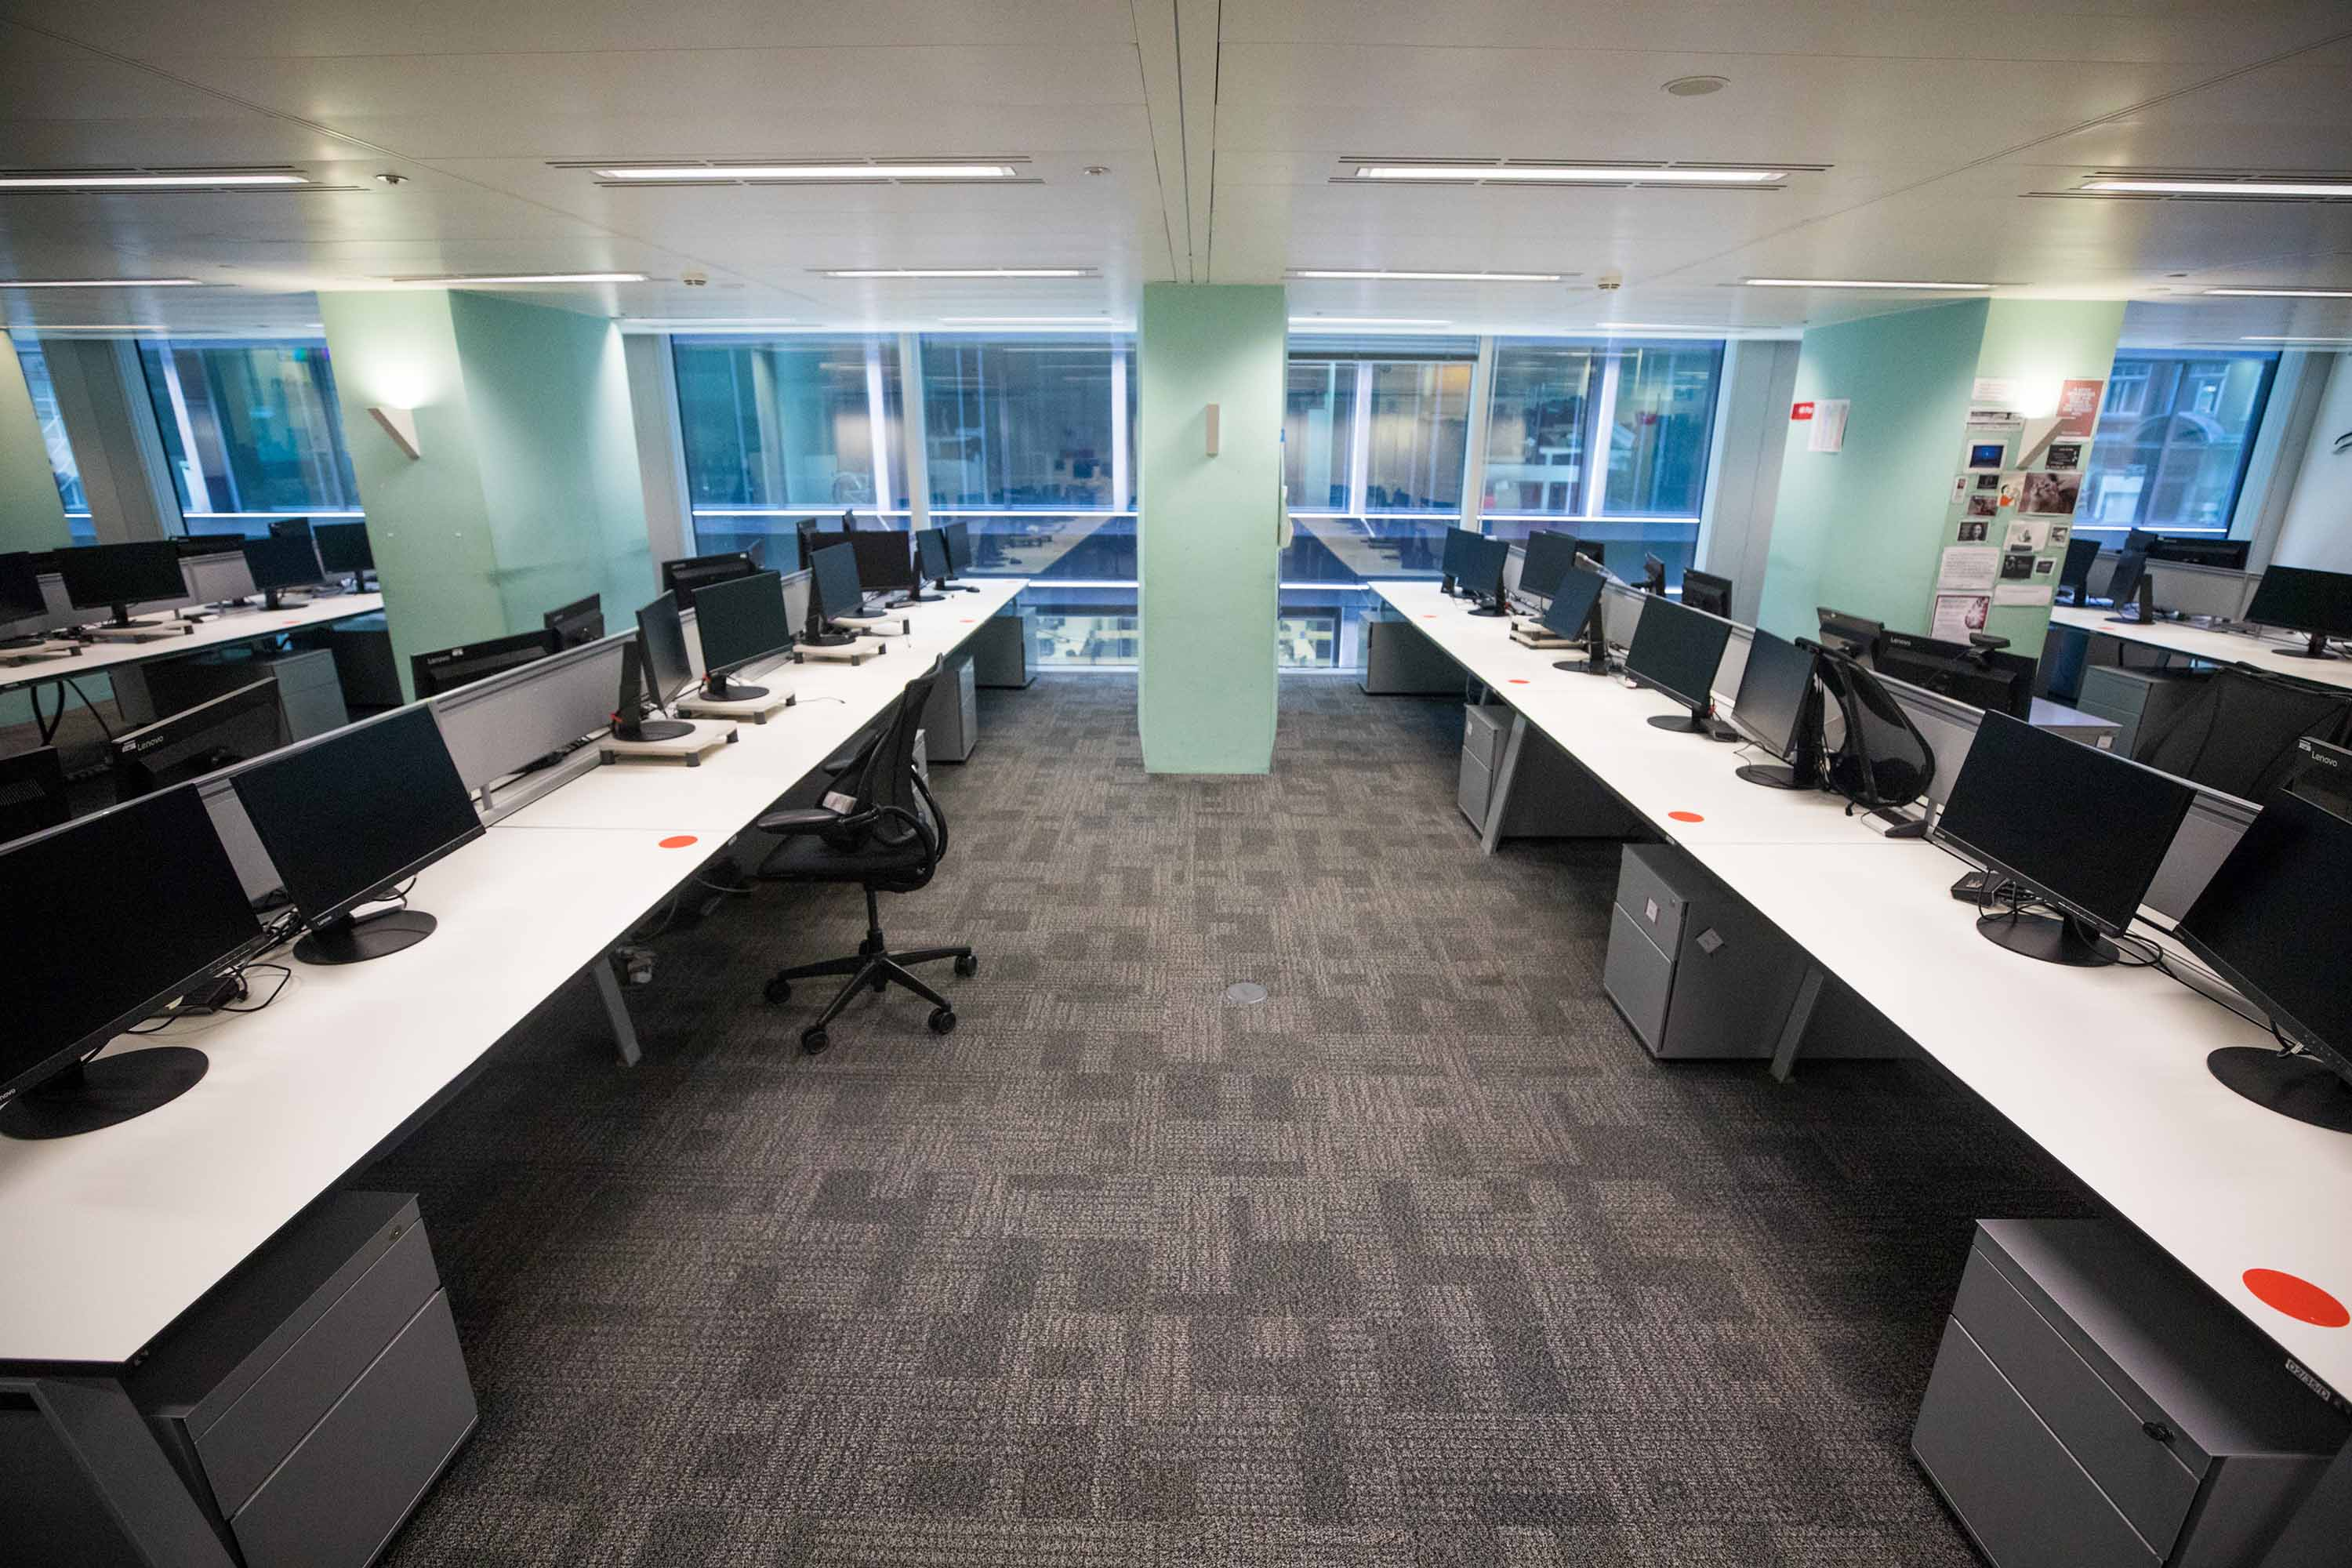 Empty desks are pictured at Cushman & Wakefield Plc's offices during the first phase of the reoccupation of their headquarters in London, on June 24.